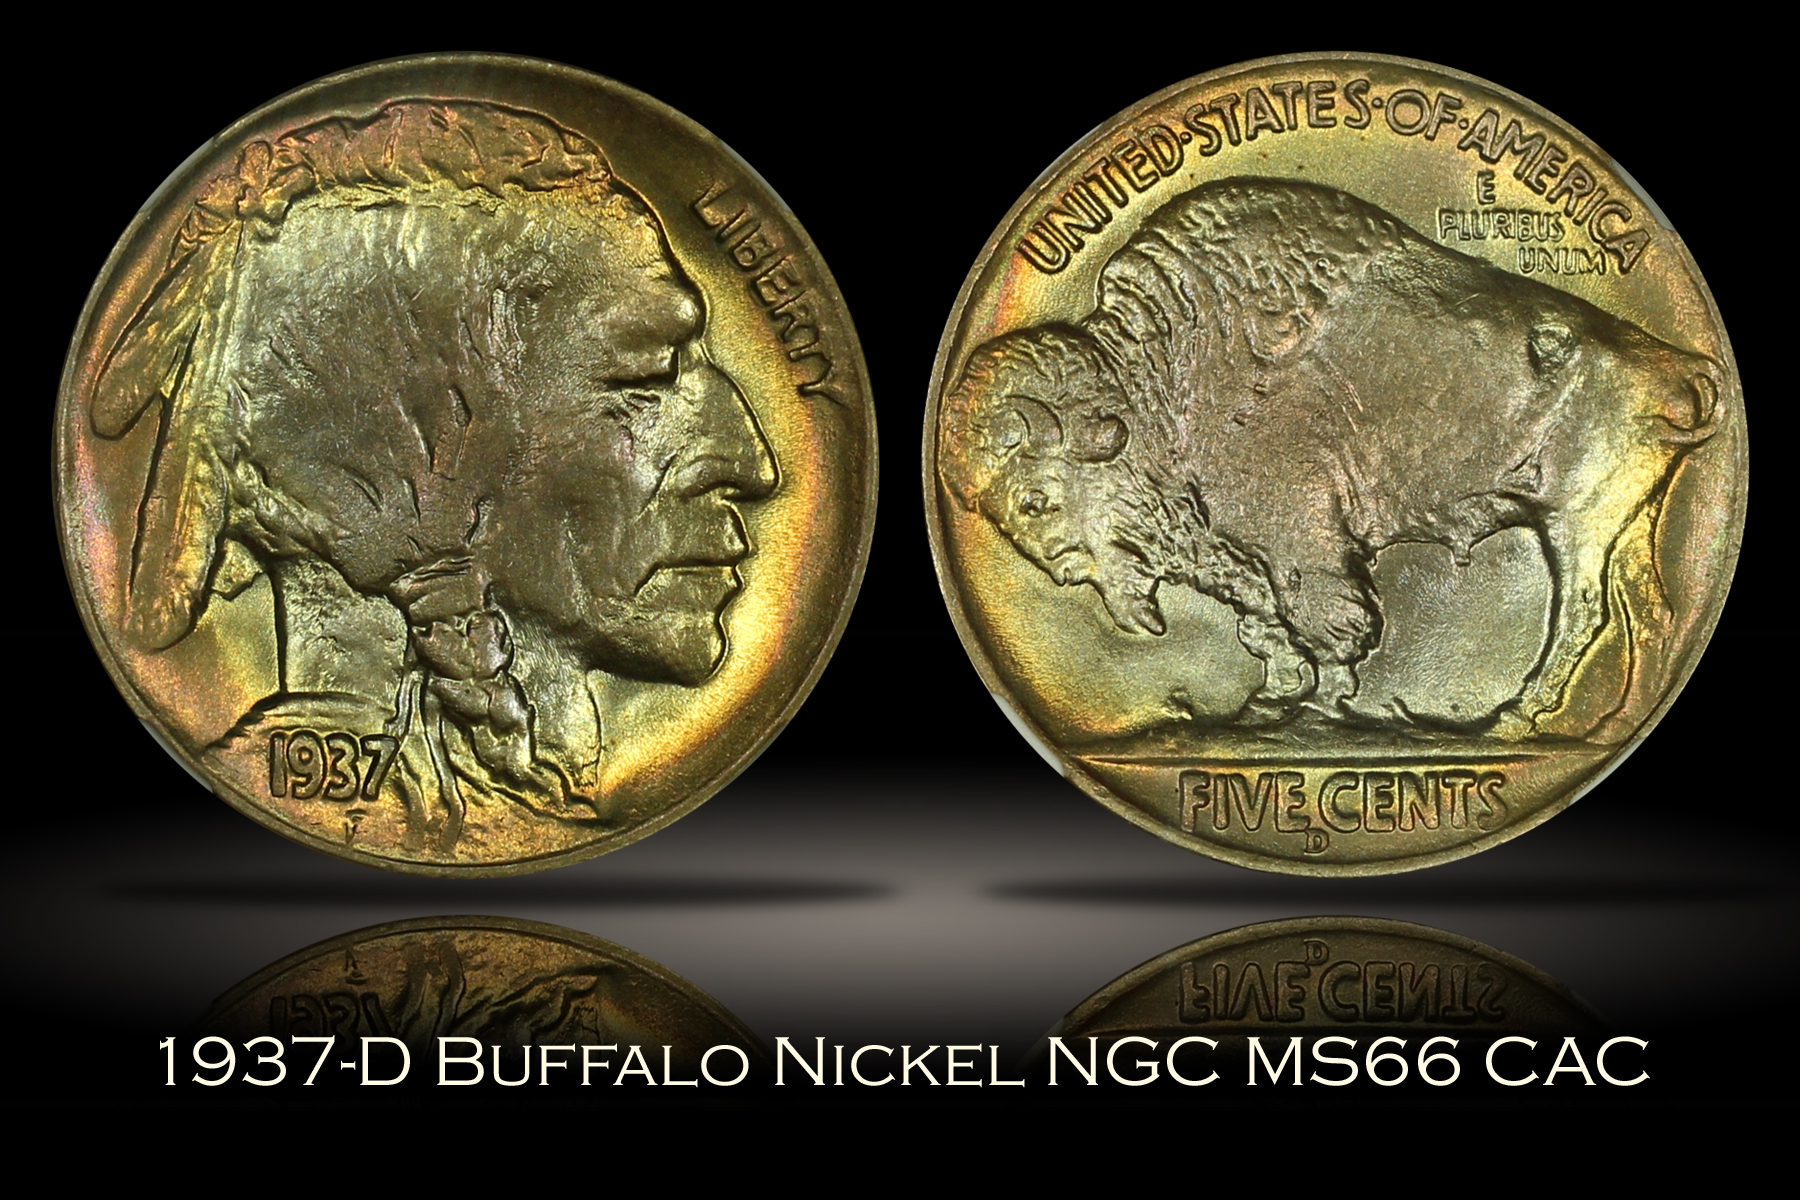 1937-D Buffalo Nickel NGC MS66